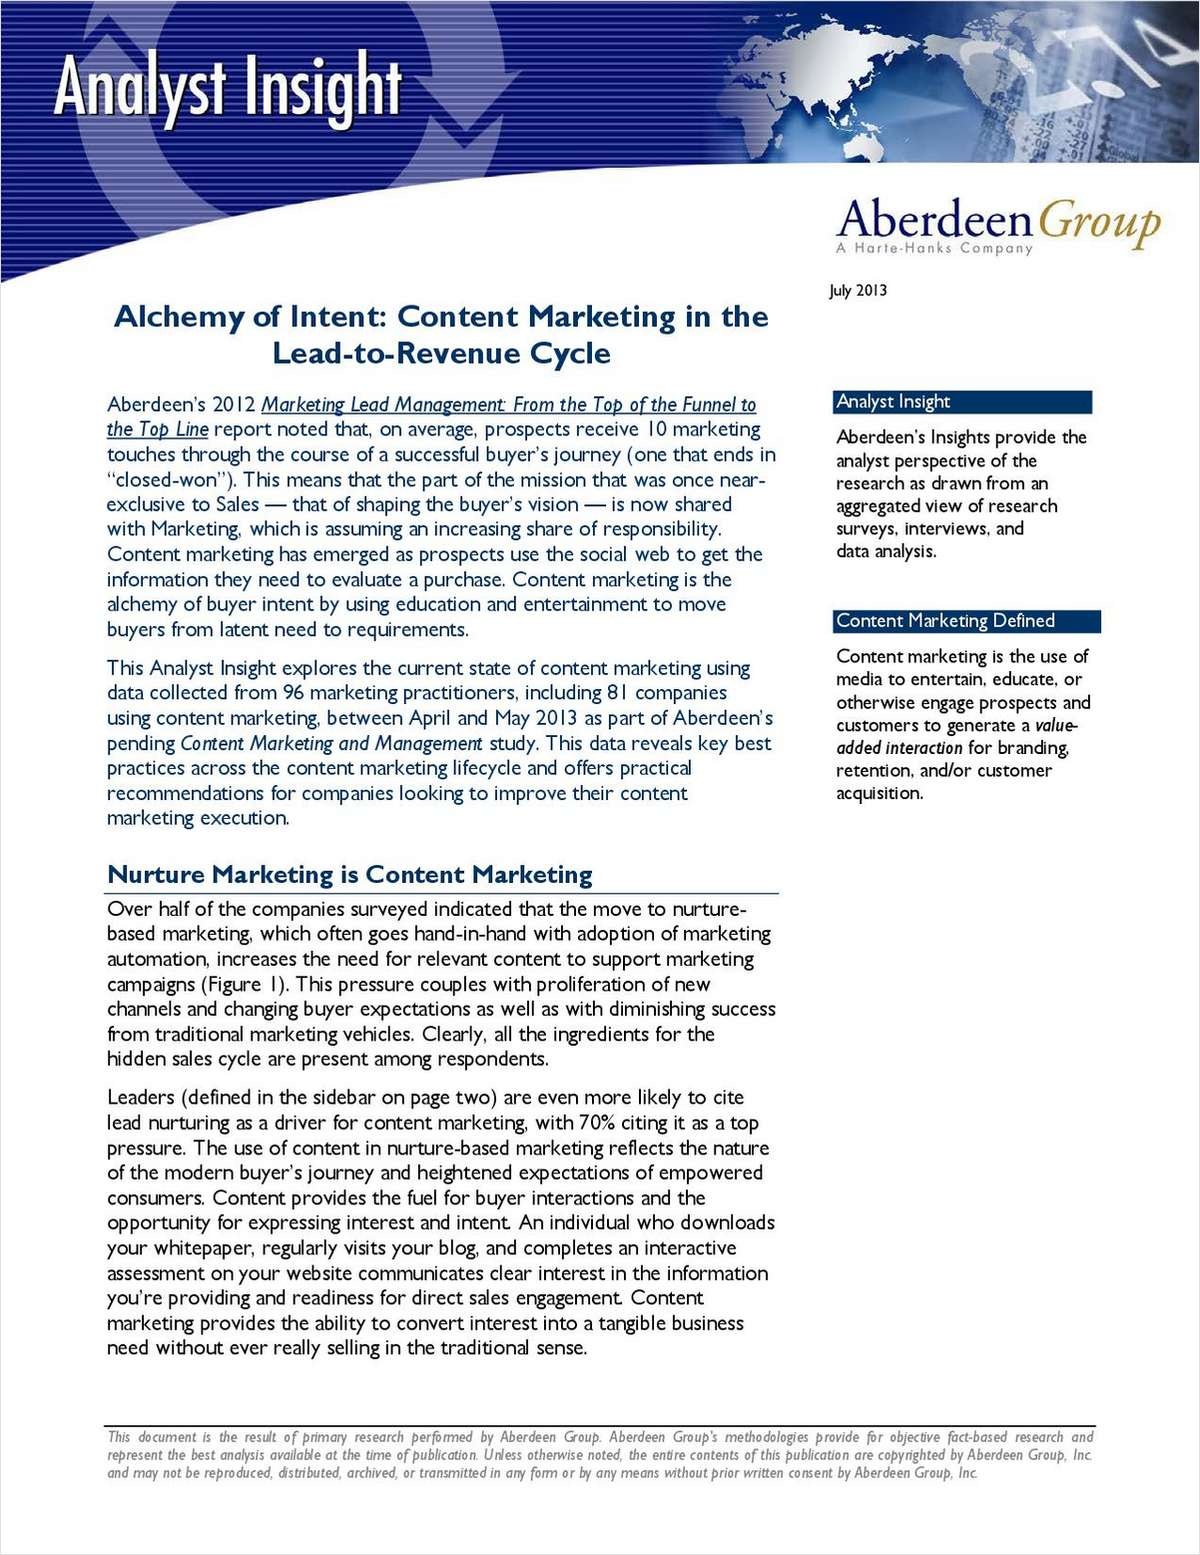 Alchemy of Intent: Content Marketing in the Lead-to-Revenue Cycle